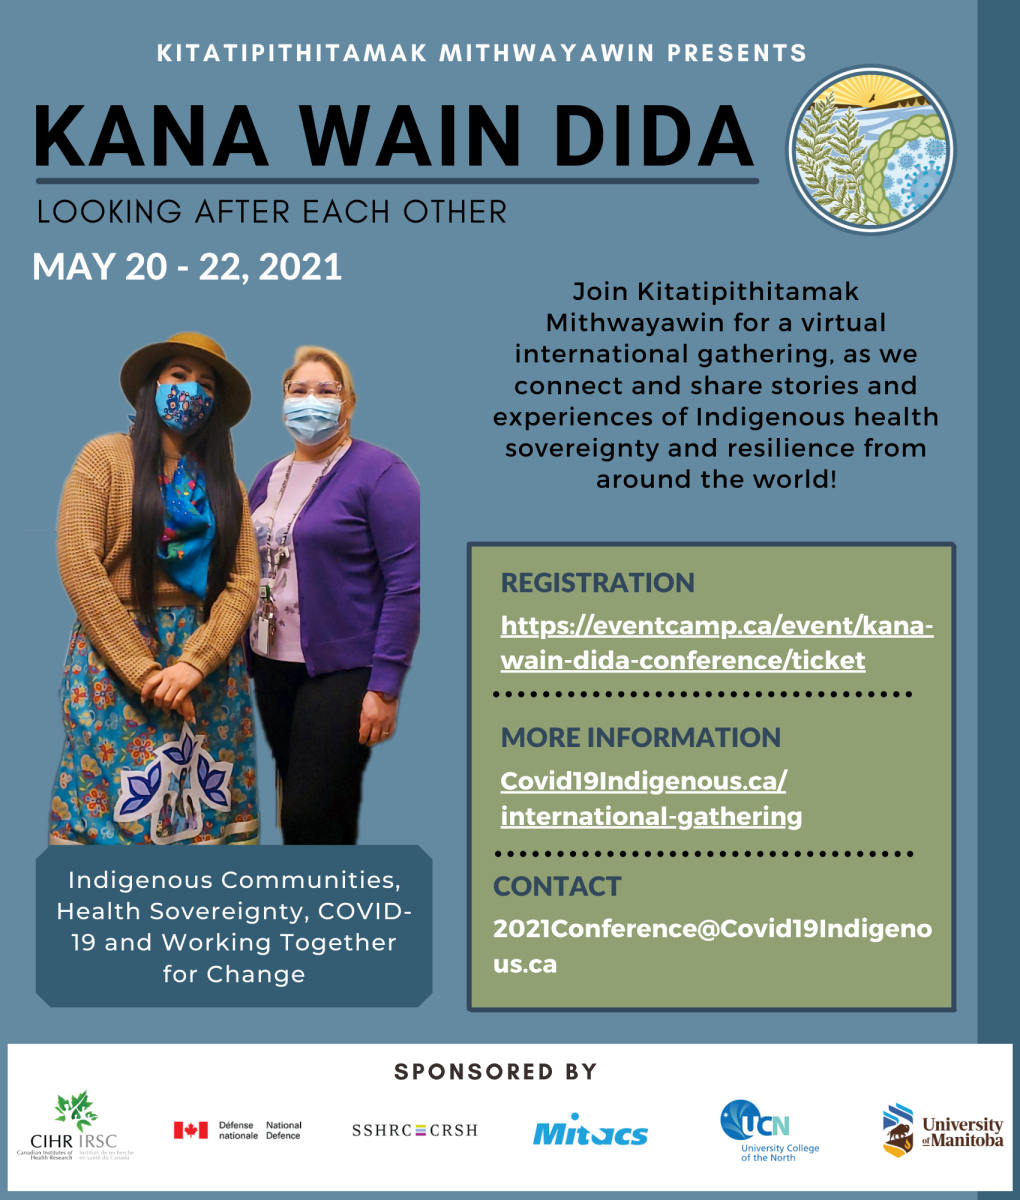 Pictured: Kitatipithitamak Mithwayawin Research Education Project presents a virtual international gathering on Indigenous-led responses to COVID-19.